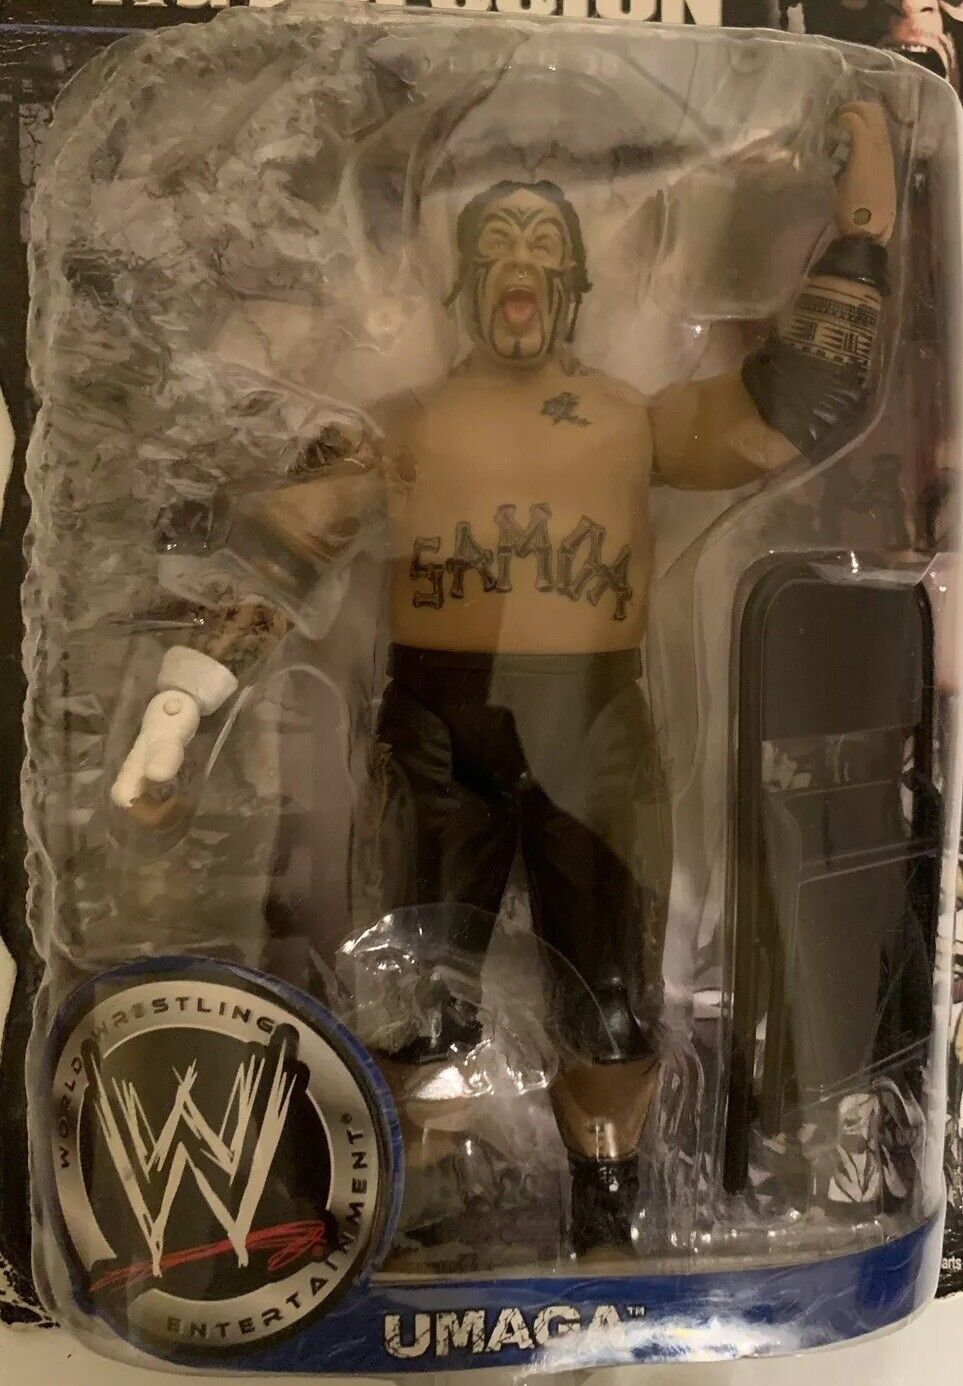 WWE WWW Ruthless Aggression Umaga New In Box wrestlemania triple h vs Umaga